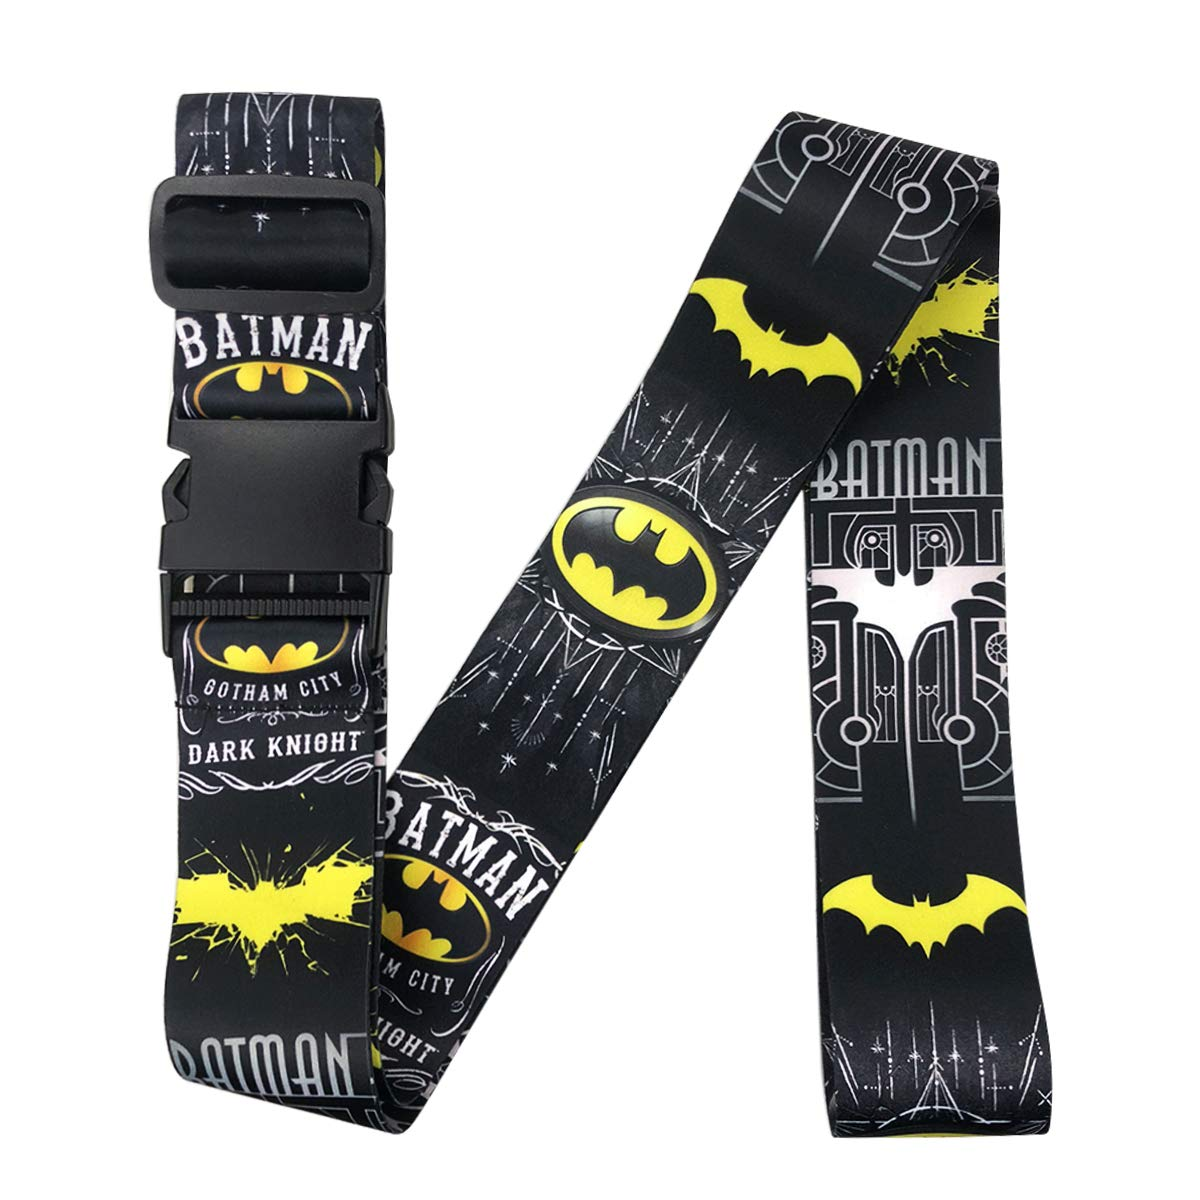 Dolopow Adjustable Luggage Straps - Batman Heavy Duty Suitcase Straps Belt Accessories for Travel Luggage 2Pack